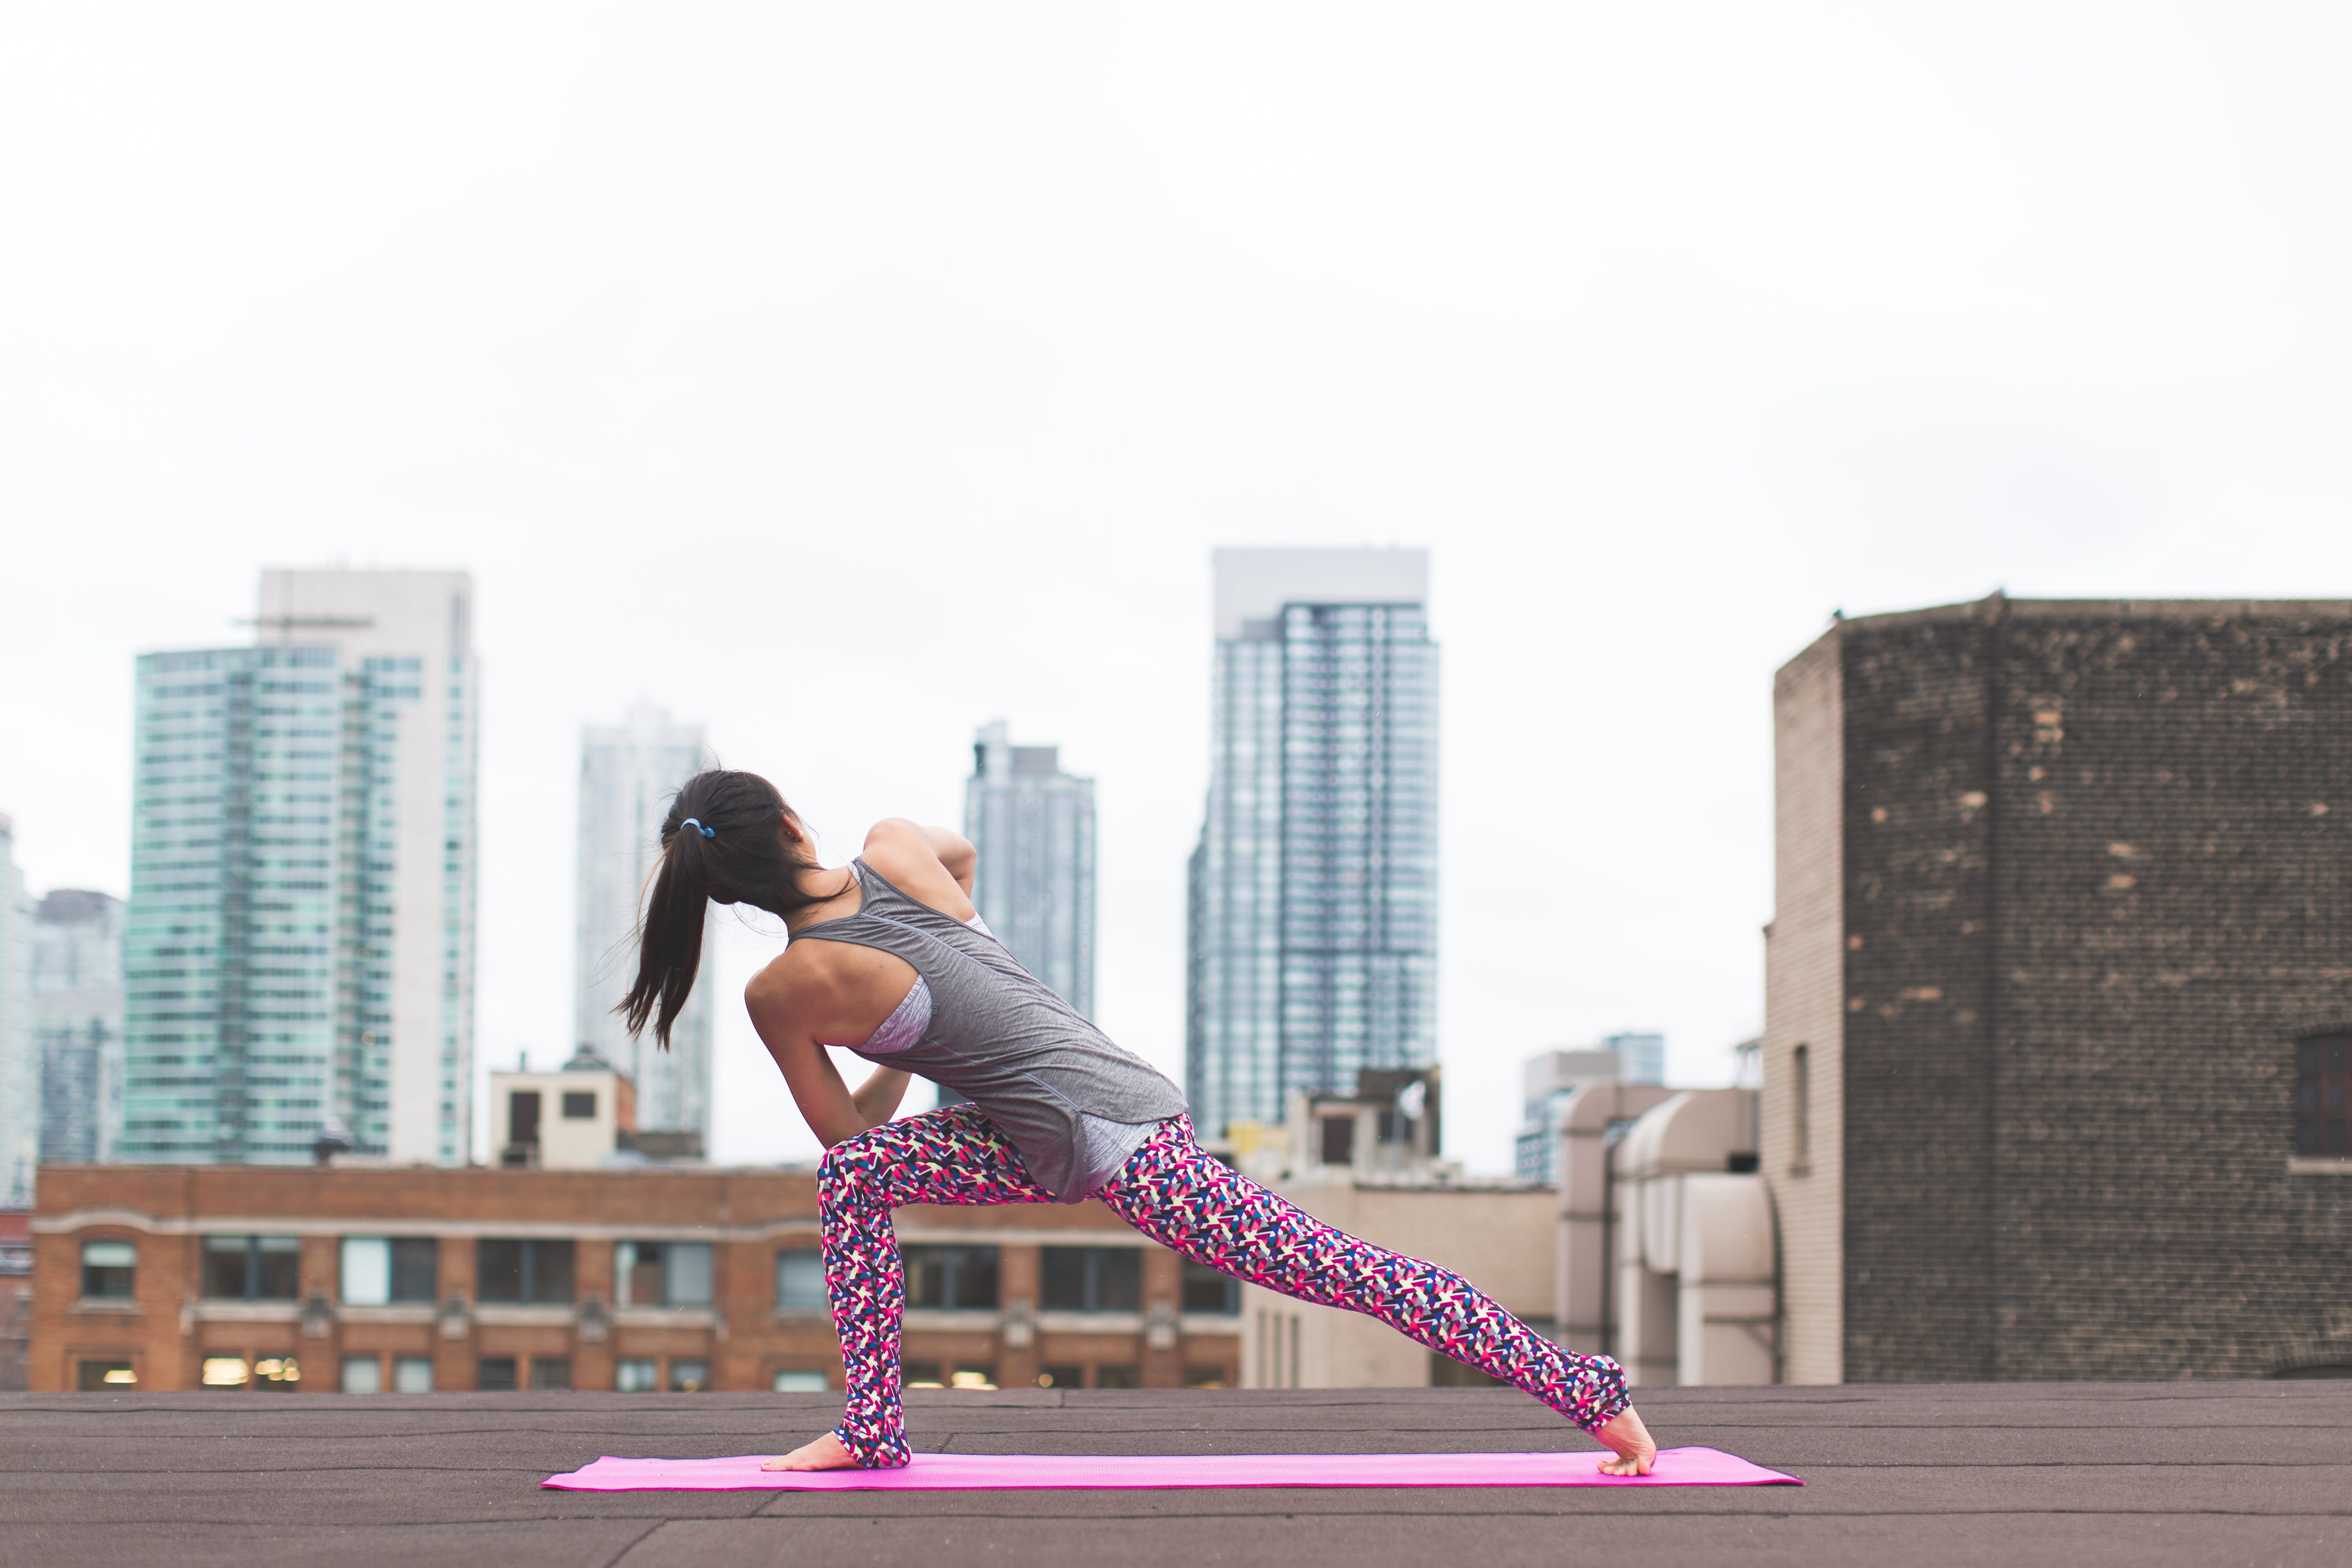 Woman Standing on Pink Yoga Mat Stretching